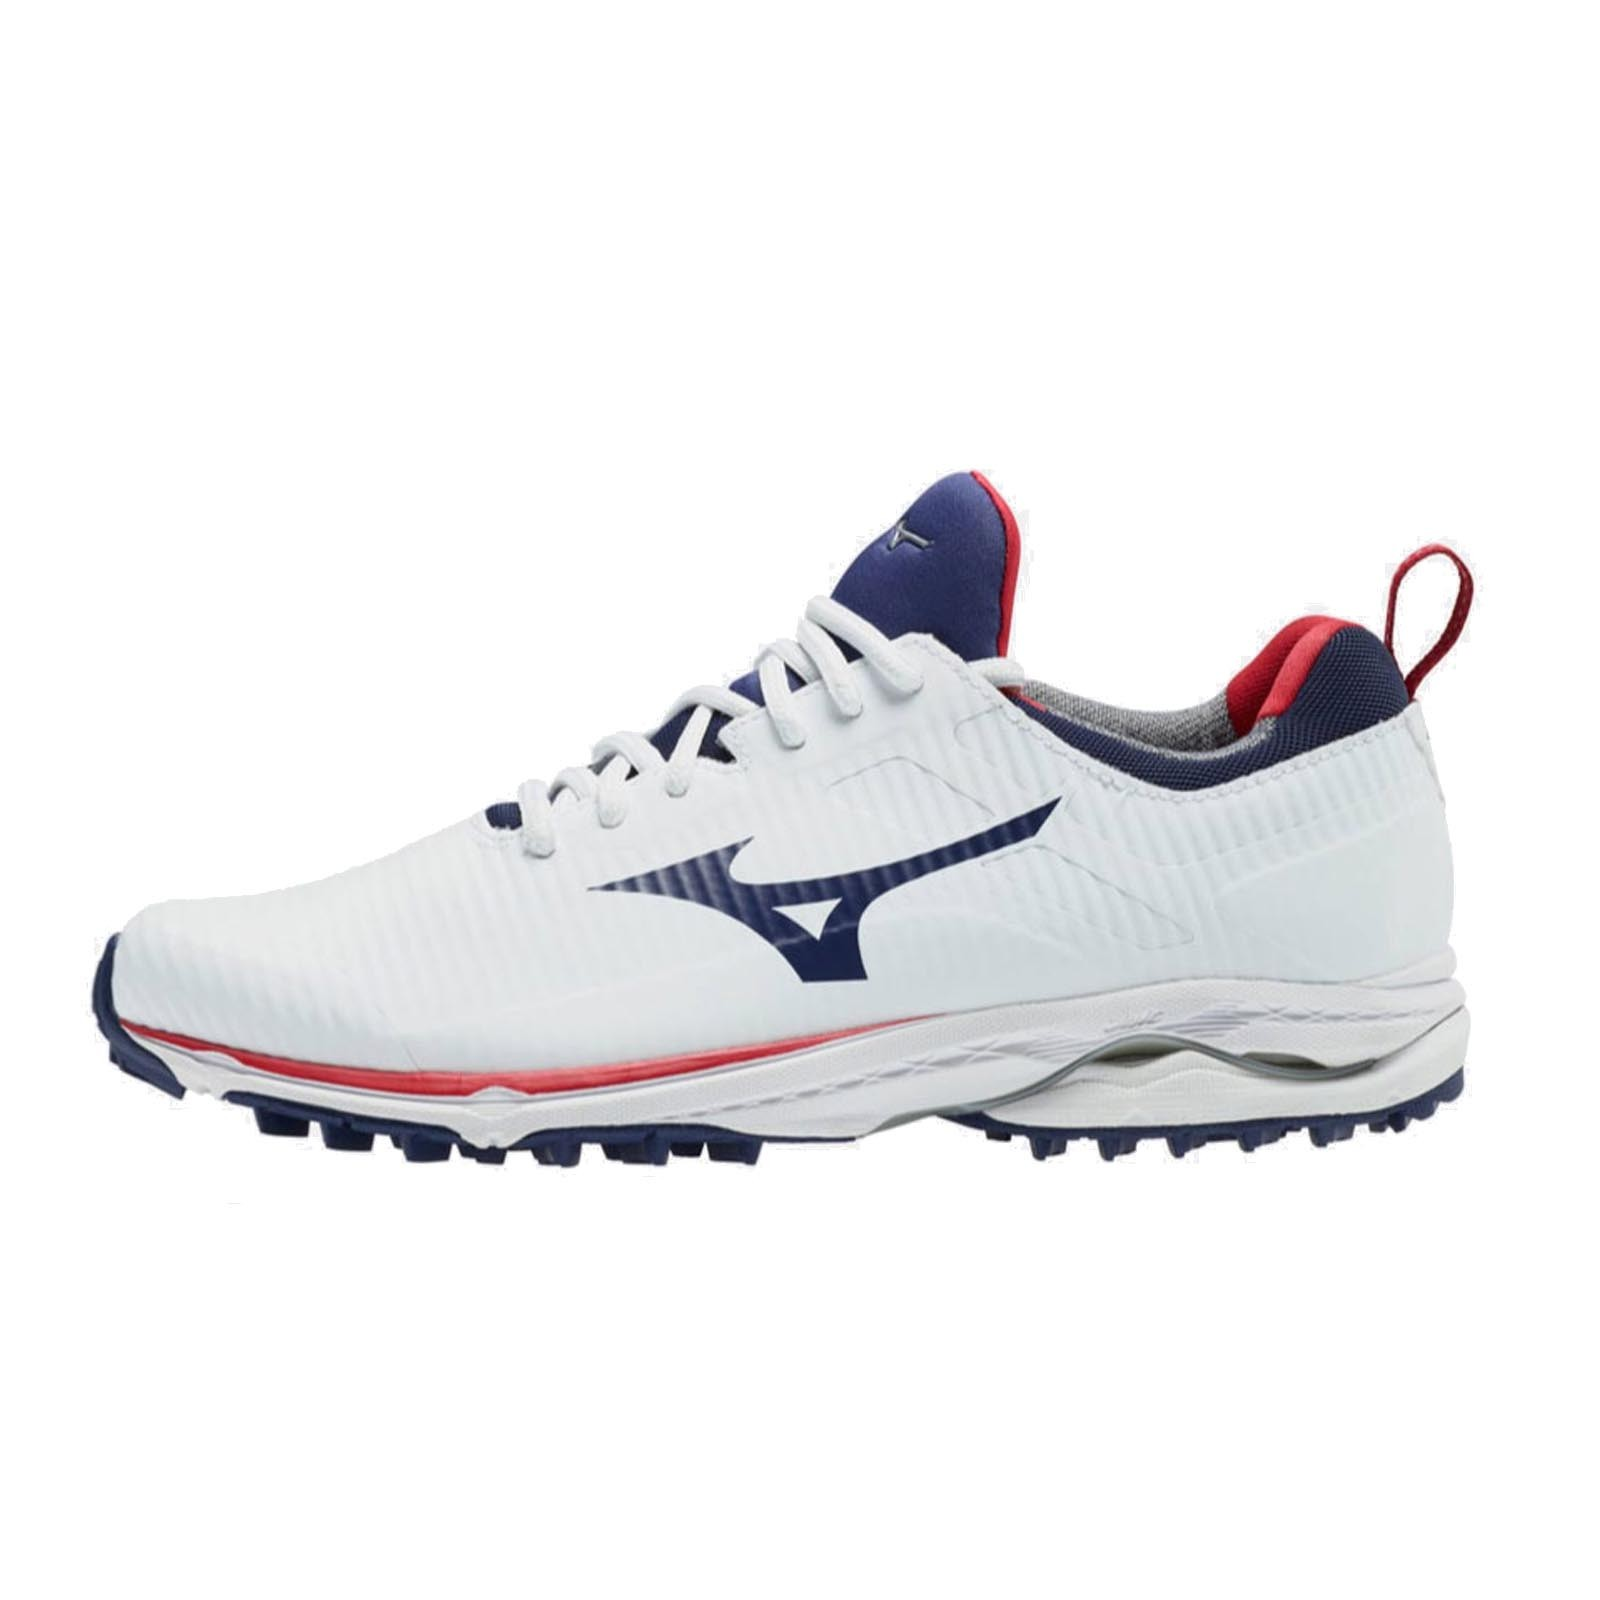 Mizuno Wave Cadence SL Golf Shoes